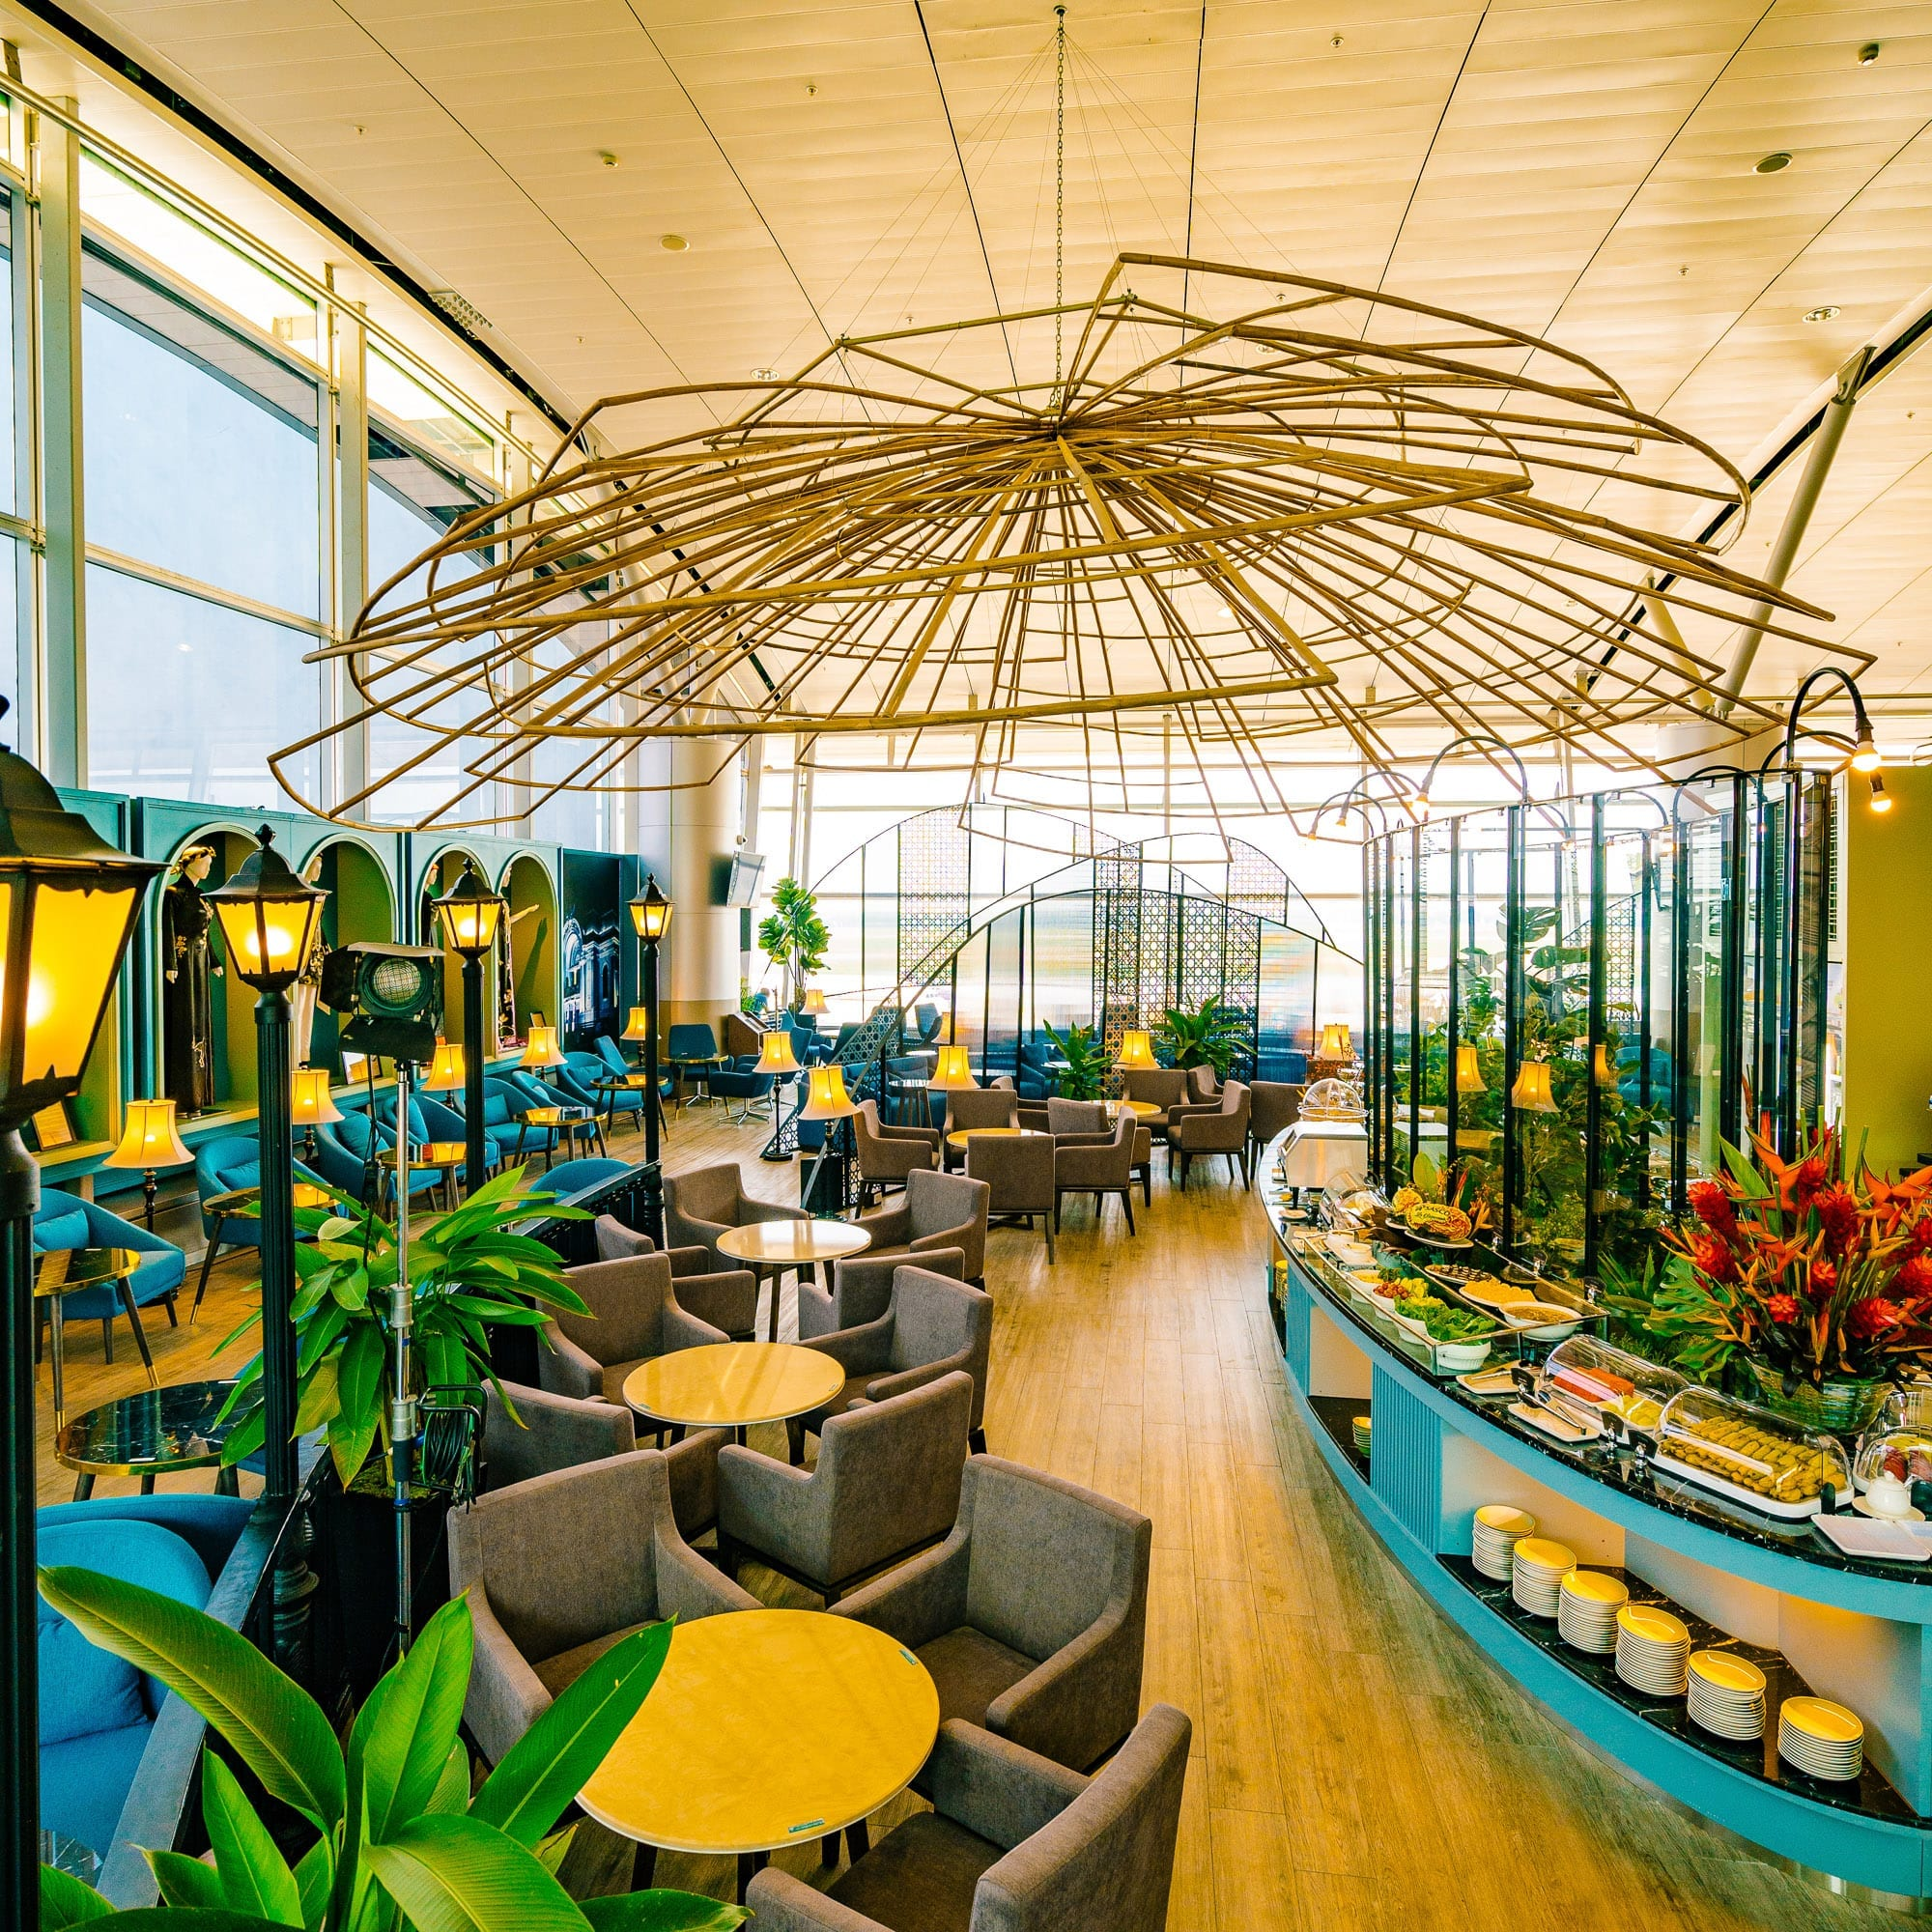 Why do passengers like the airport lounge?